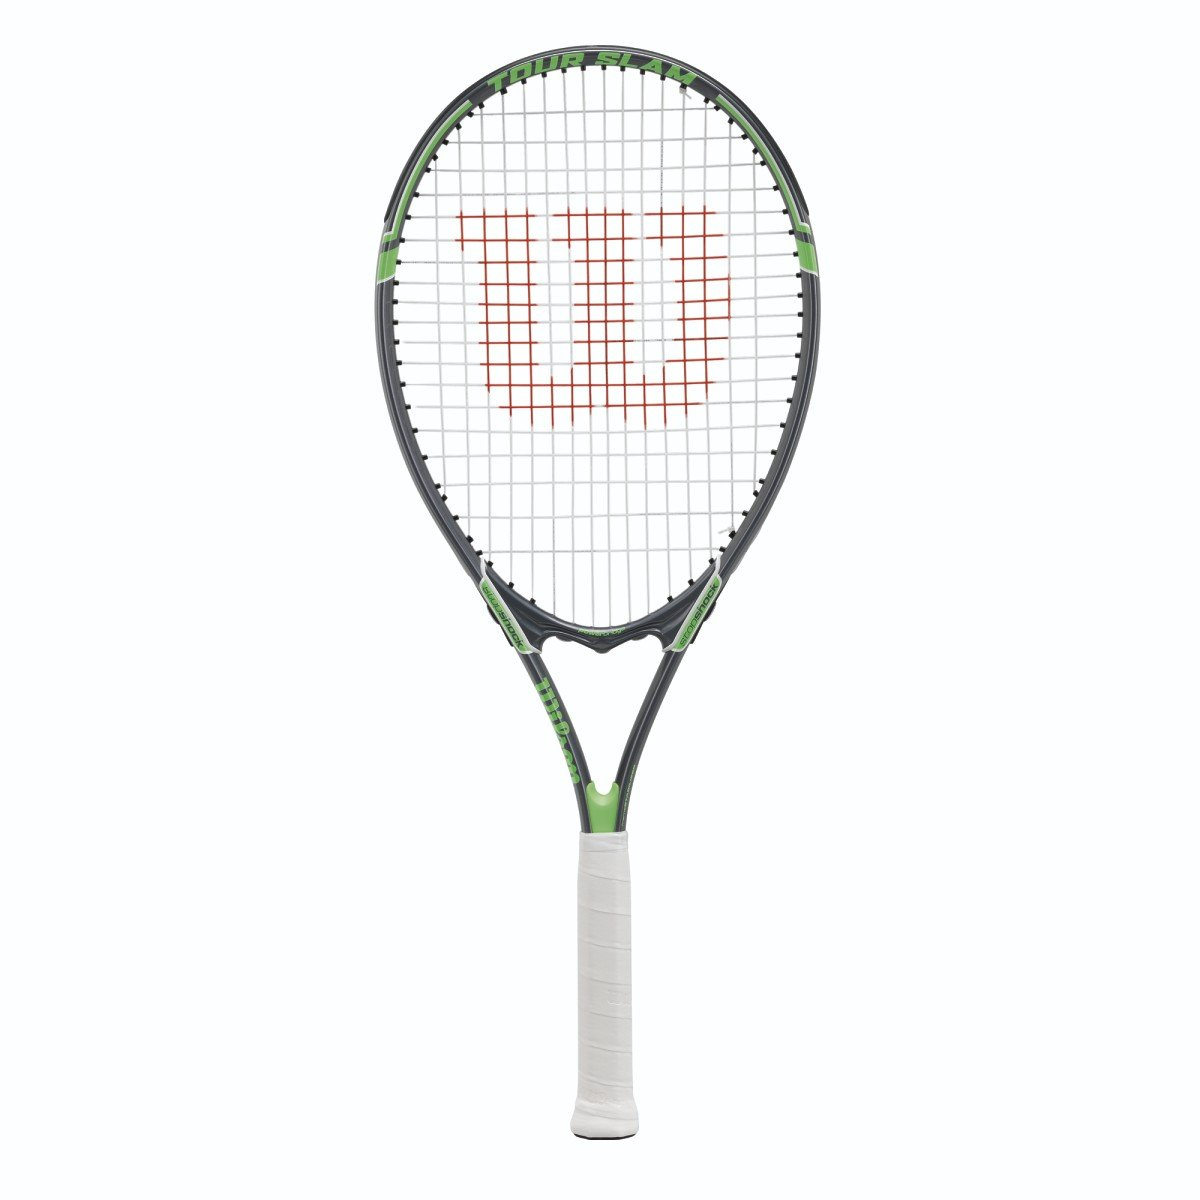 Buy Used Tennis Racquets